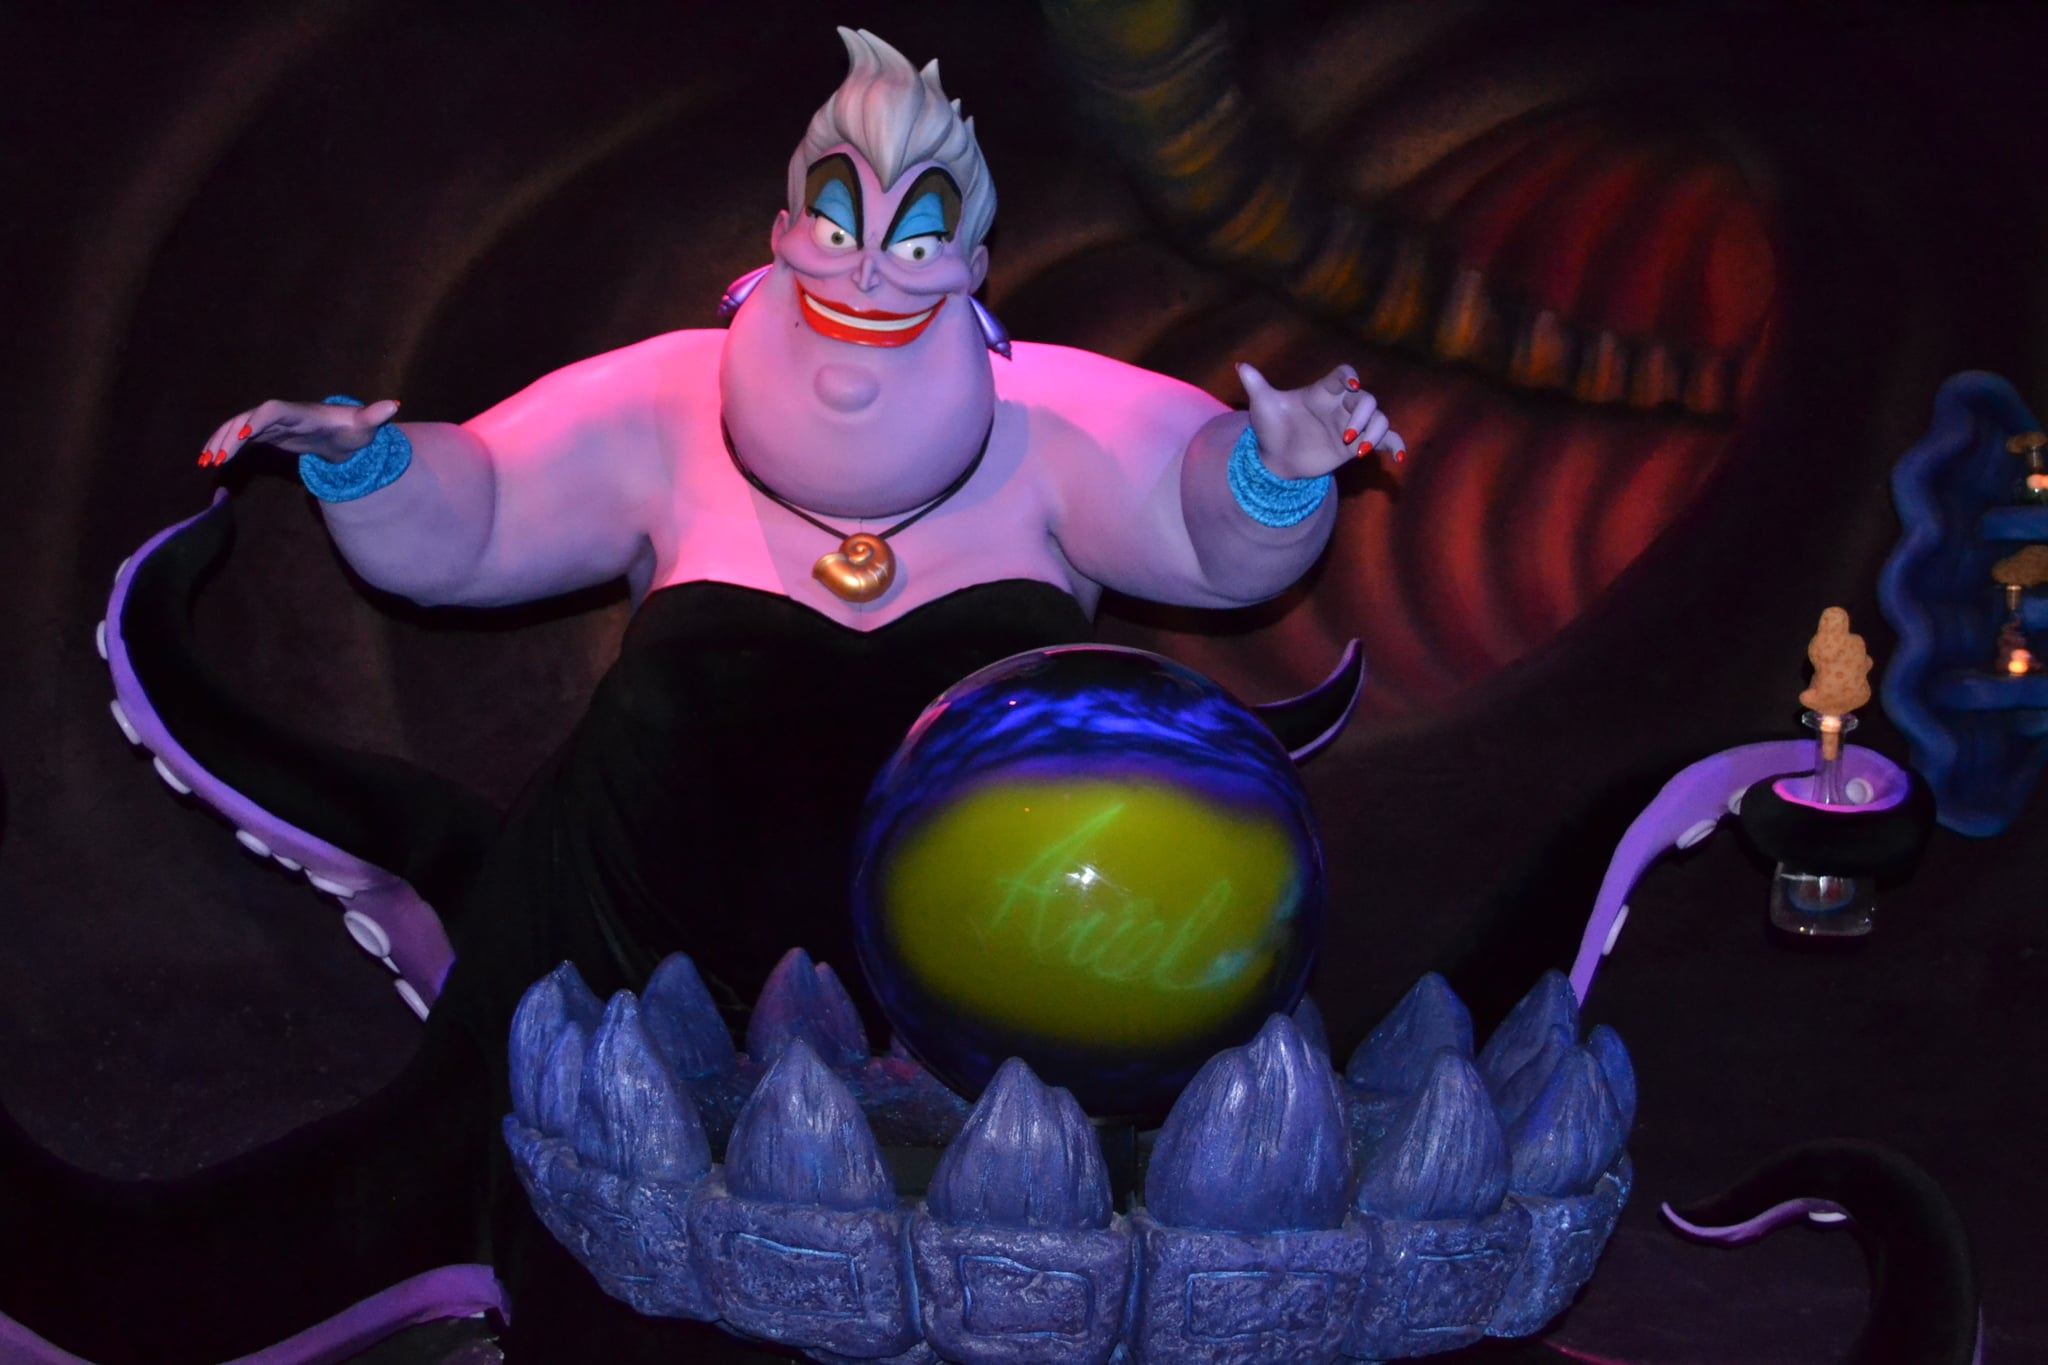 Disney guests disturbed by unexpectedly headless singing Ursula